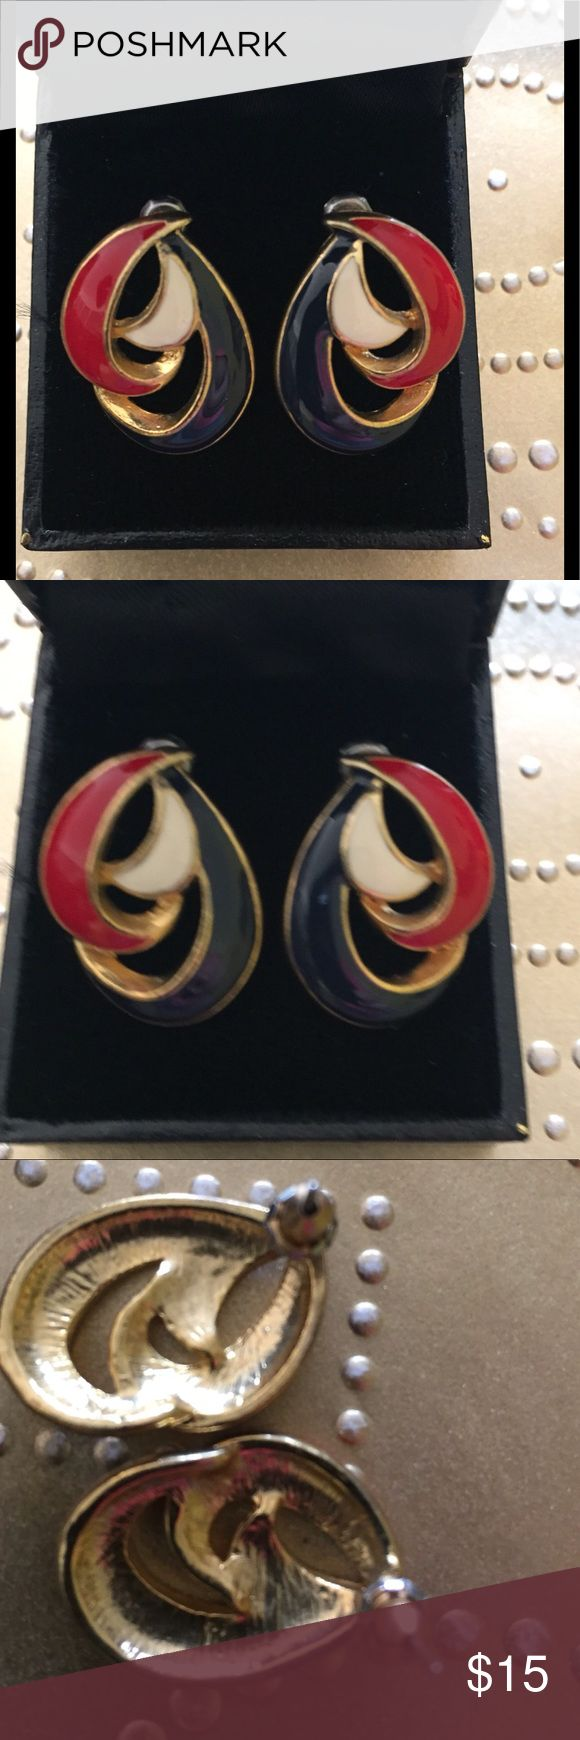 Red White And Blue Nautical Earrings Purchased at estate sale not sure of the age. Seller told me they were her mothers. They are probably from the sixties. Like new condition. Please no lowball offers. I spend a lot of money and time to find these treasures for you. Thank you for looking. Jewelry Earrings